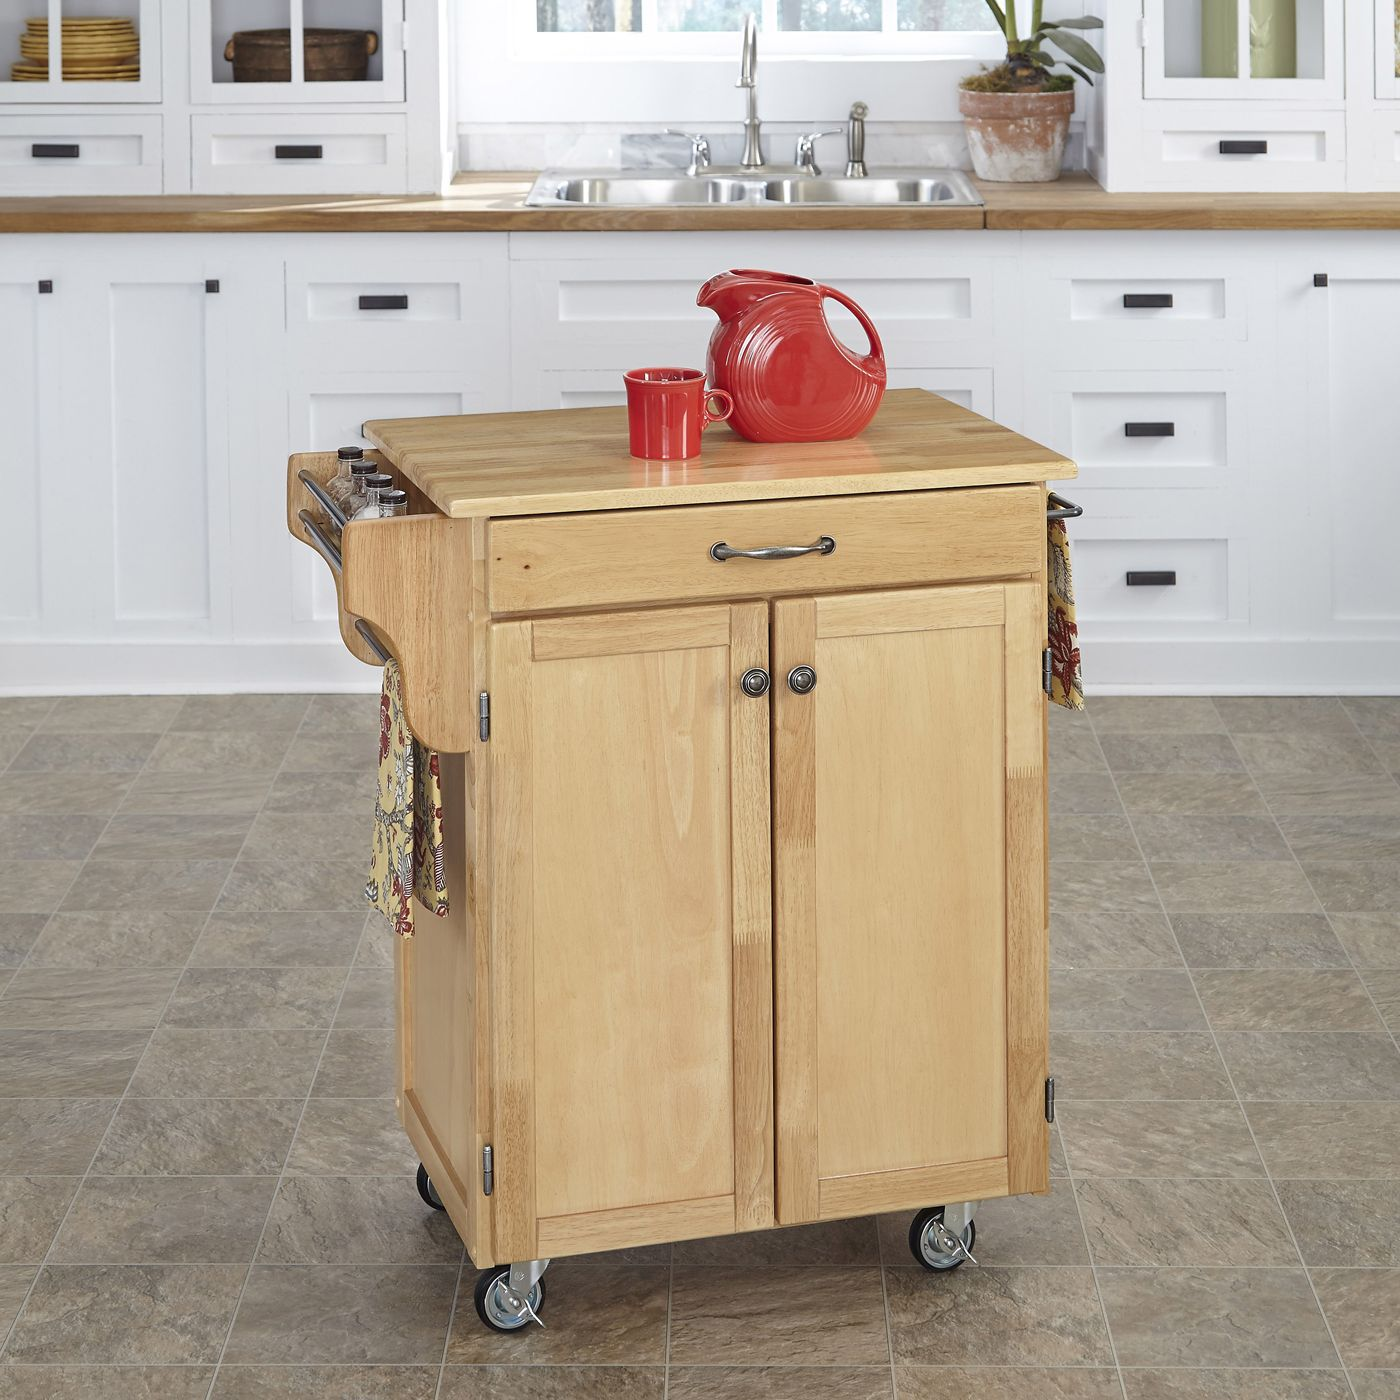 Best Bust Of Kitchen Carts On Wheels Movable Meal Preparation 400 x 300